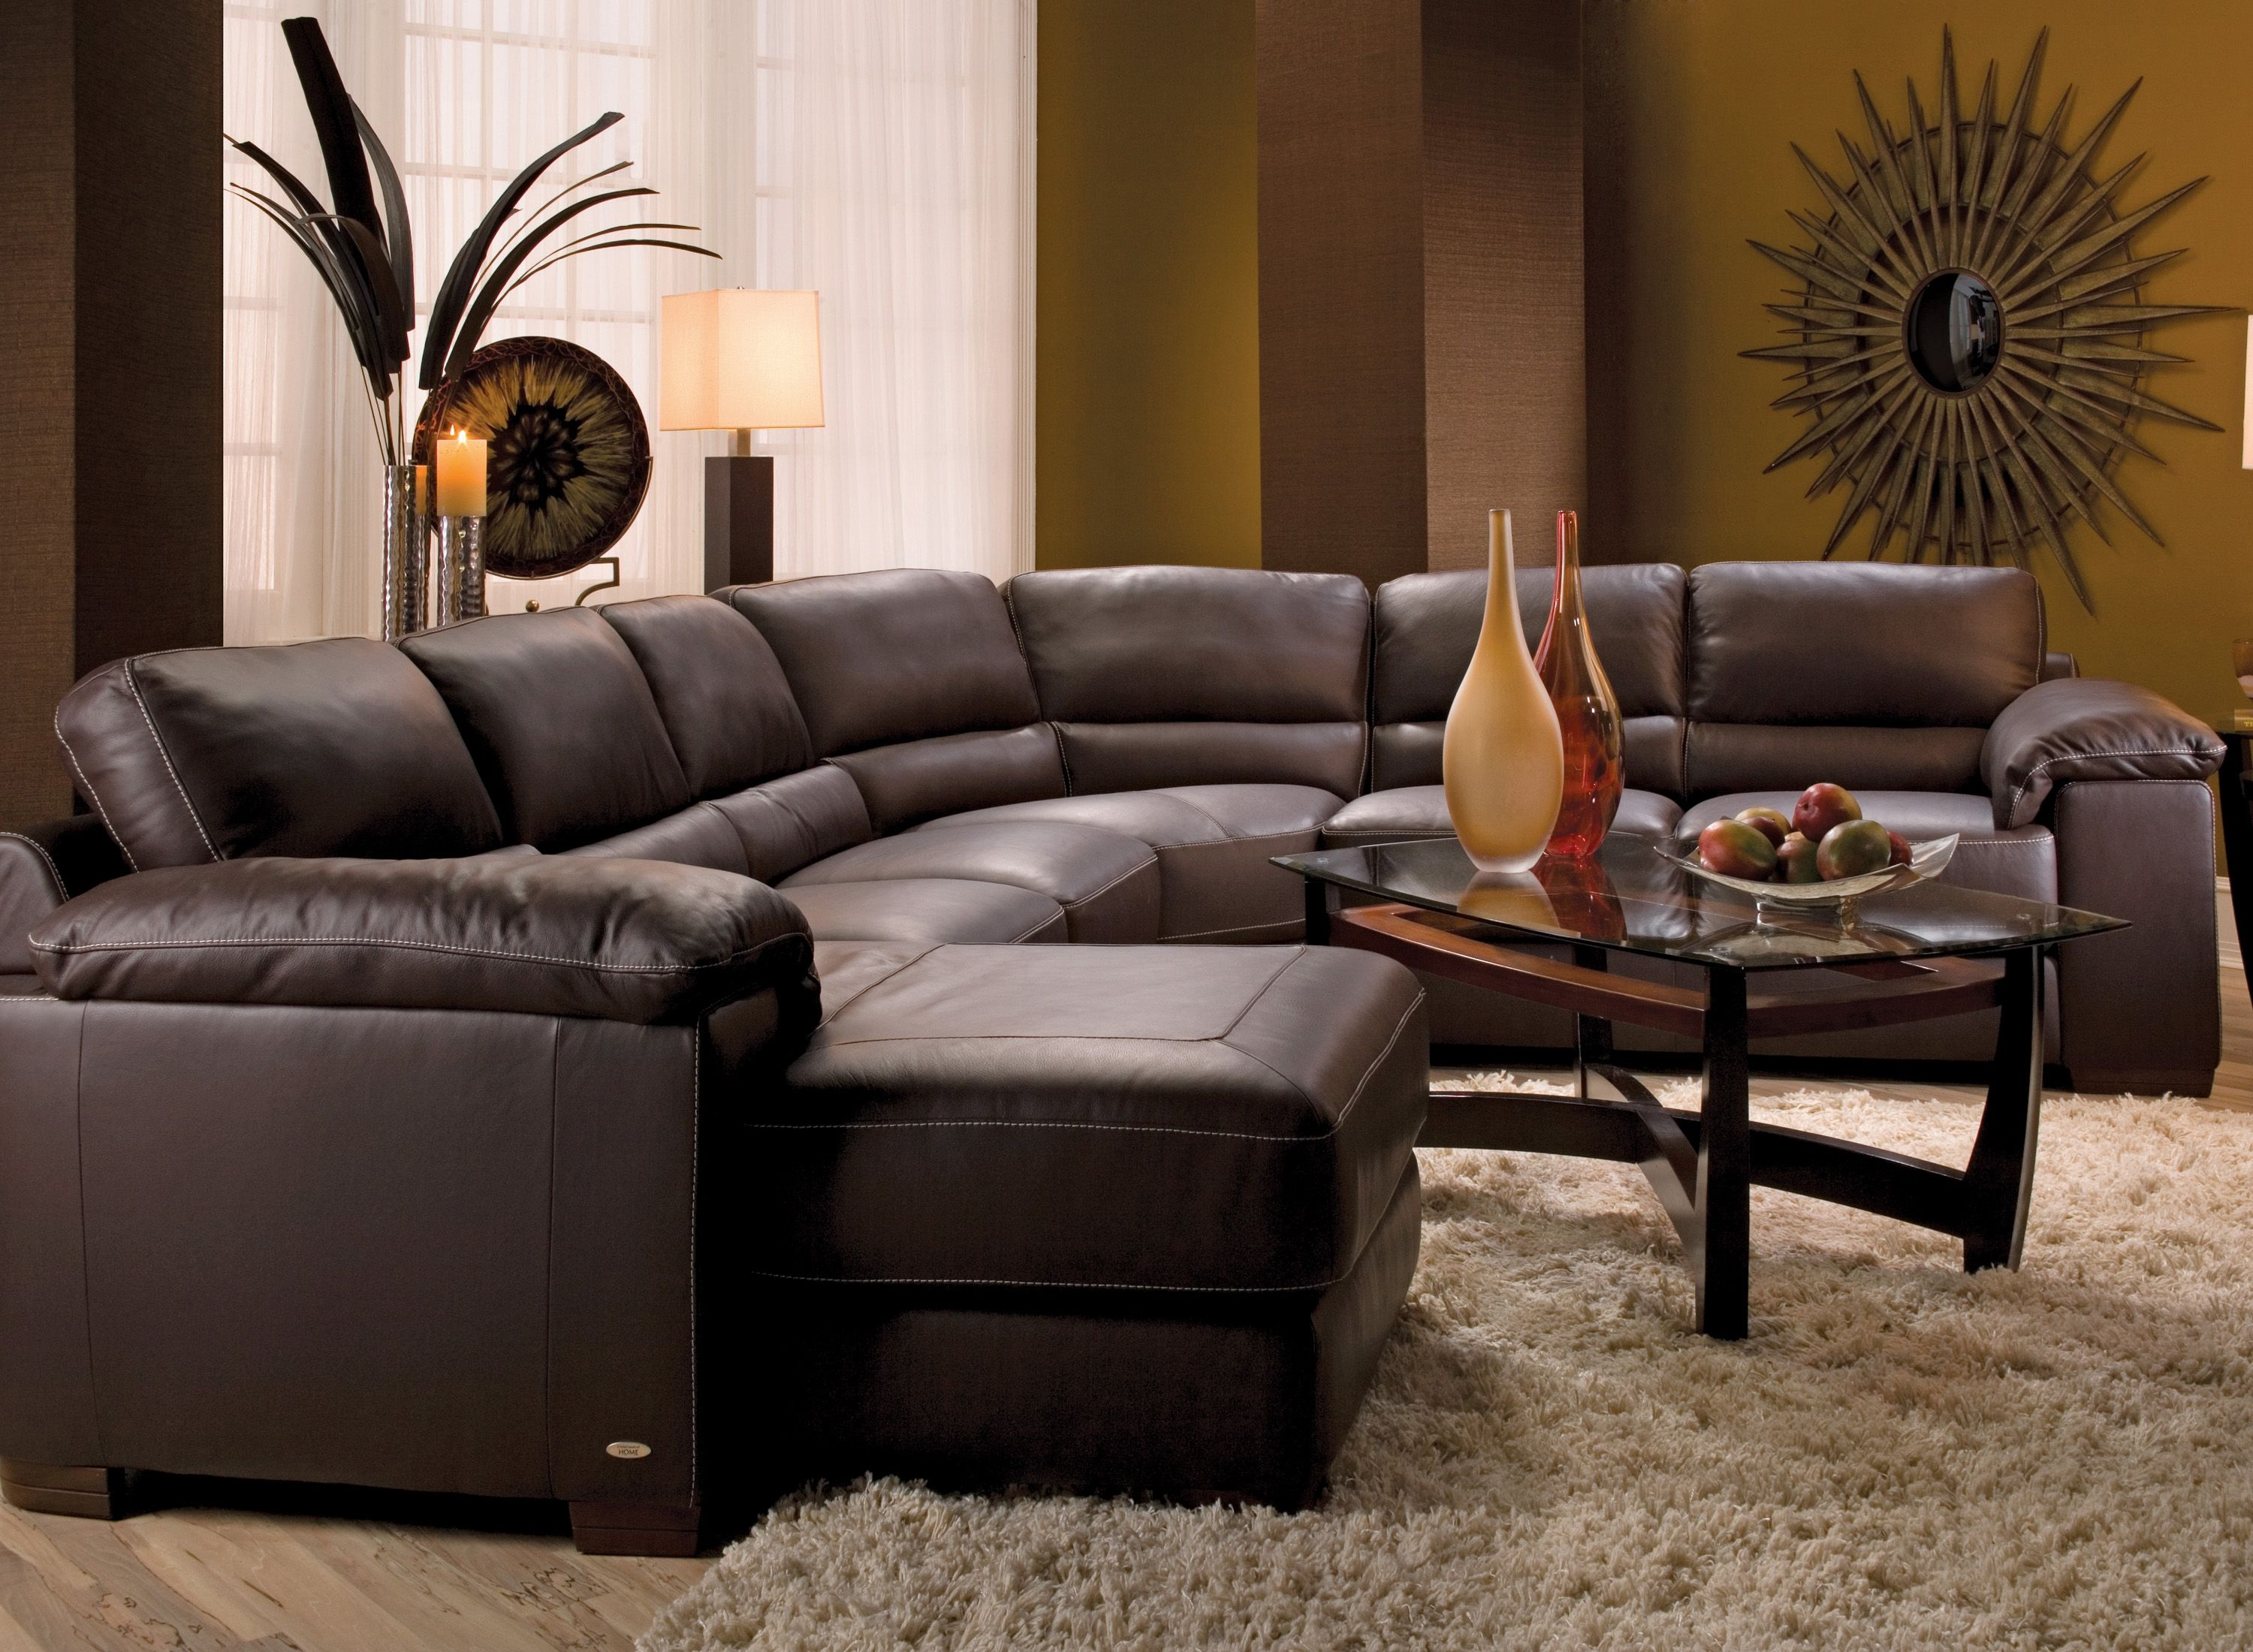 Sensational Cindy Crawford Maglie 4 Pc Leather Sectional Sofa Download Free Architecture Designs Scobabritishbridgeorg